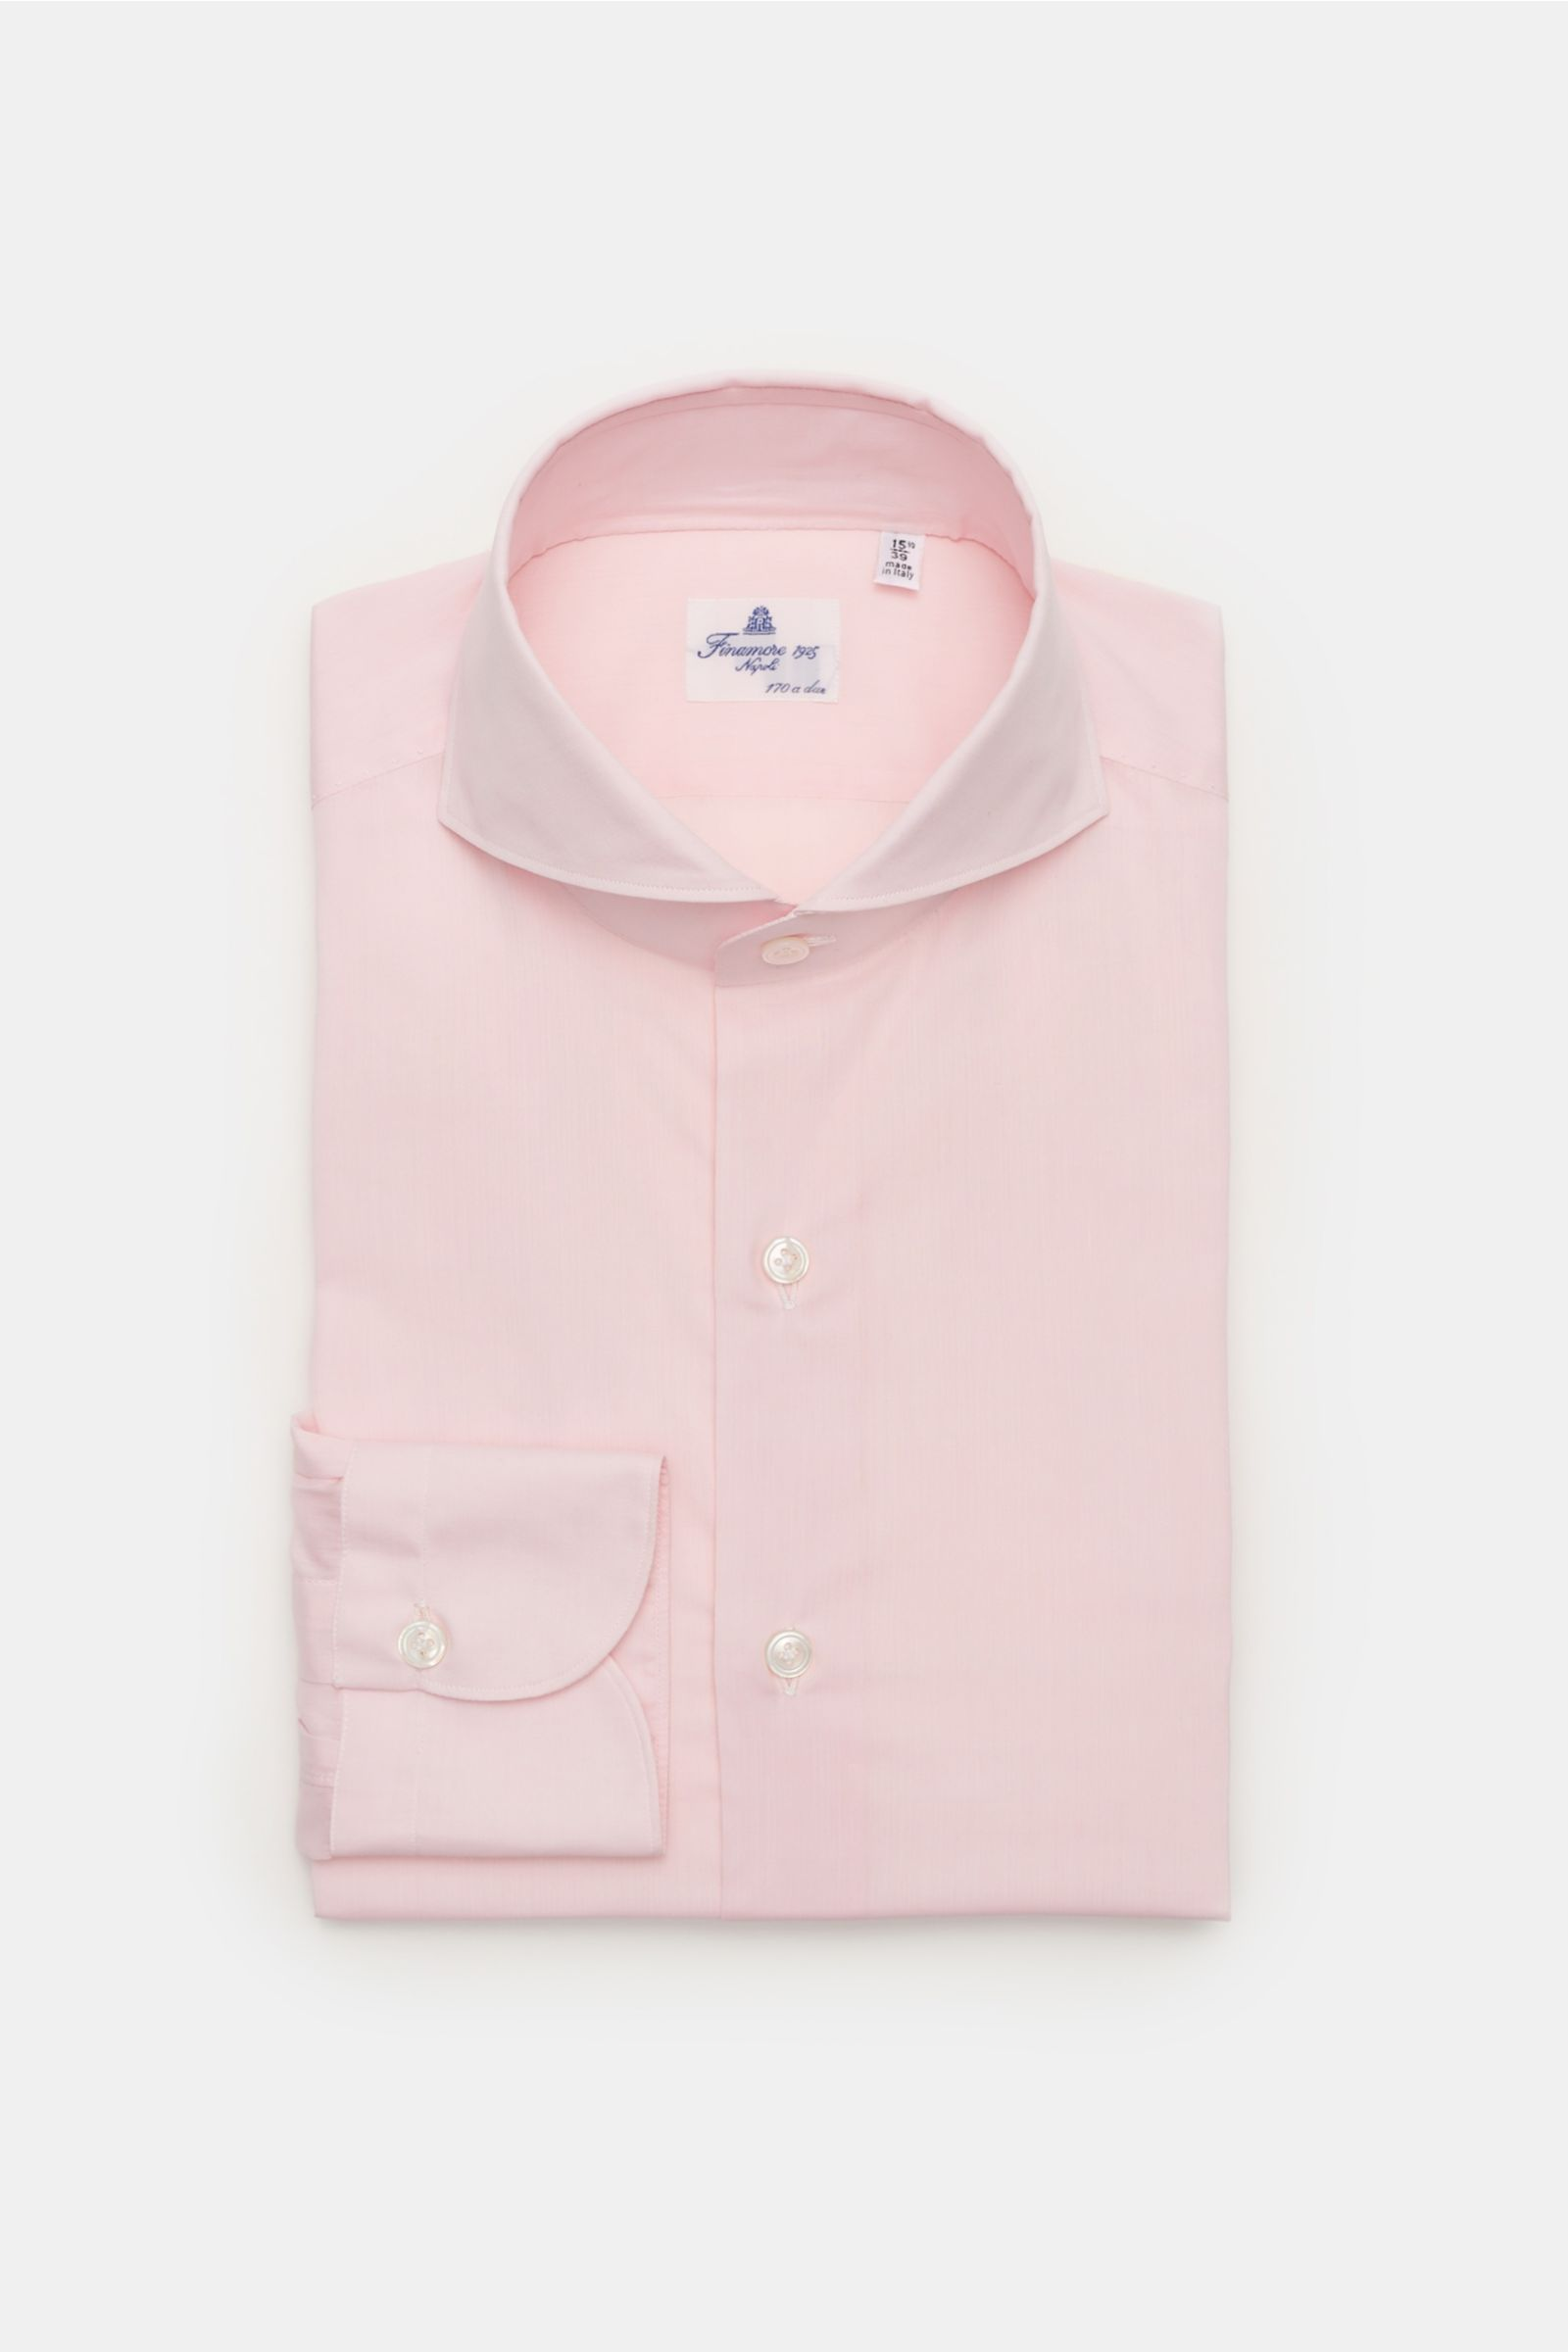 Business shirt 'Sergio Milano' shark collar rose